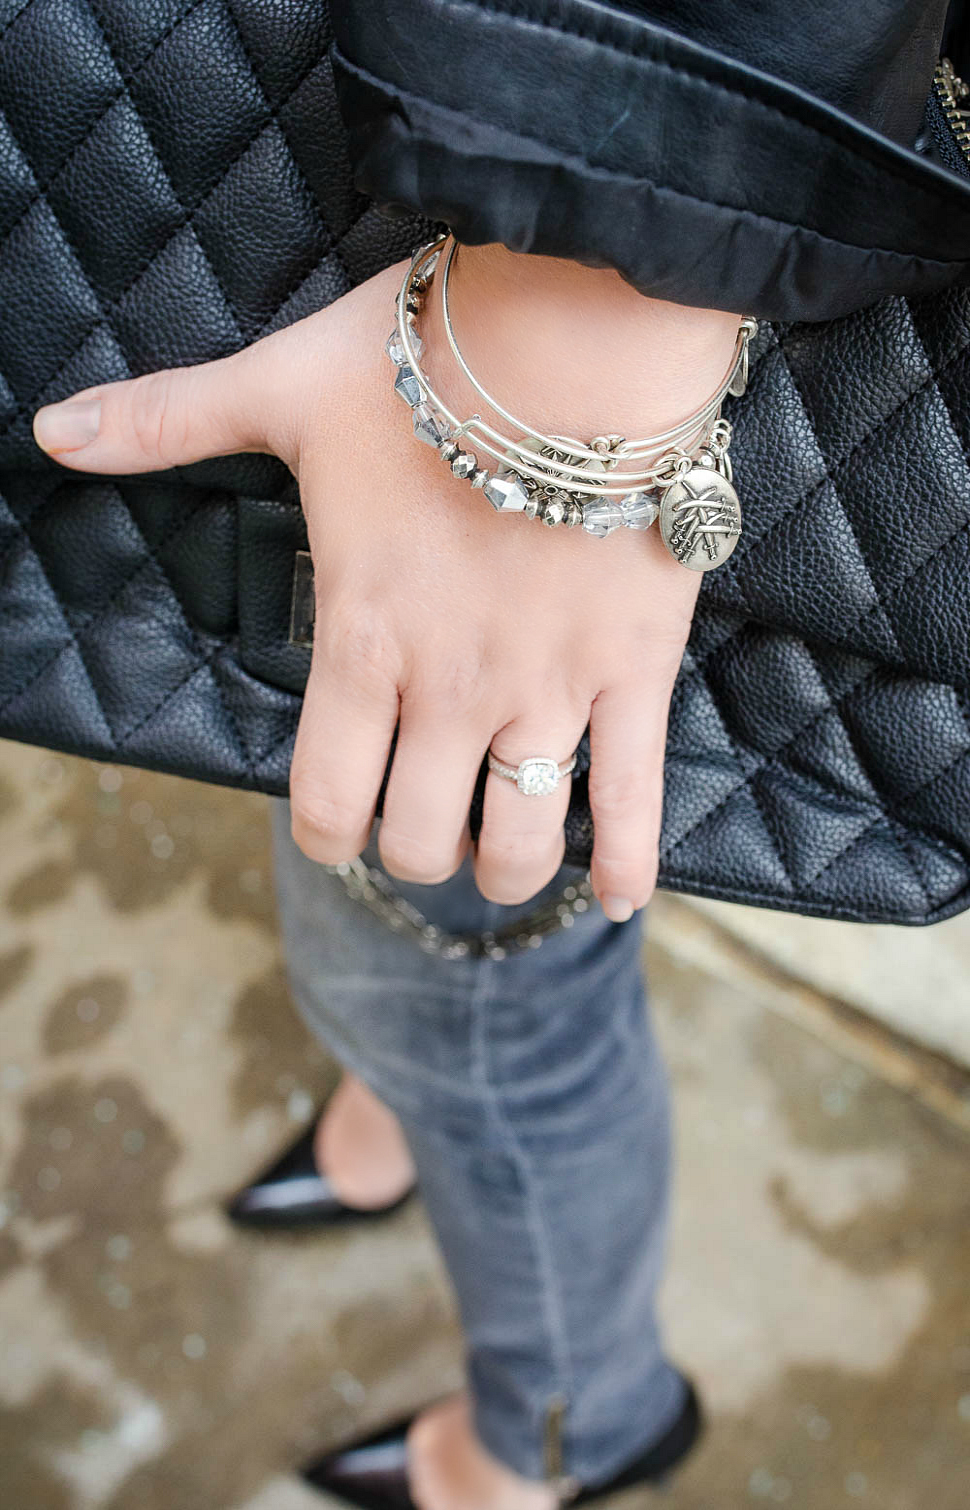 leather-jacket-fringe-top-black-jeans-quilted-bag-rosecitystyleguide-alexandani-1